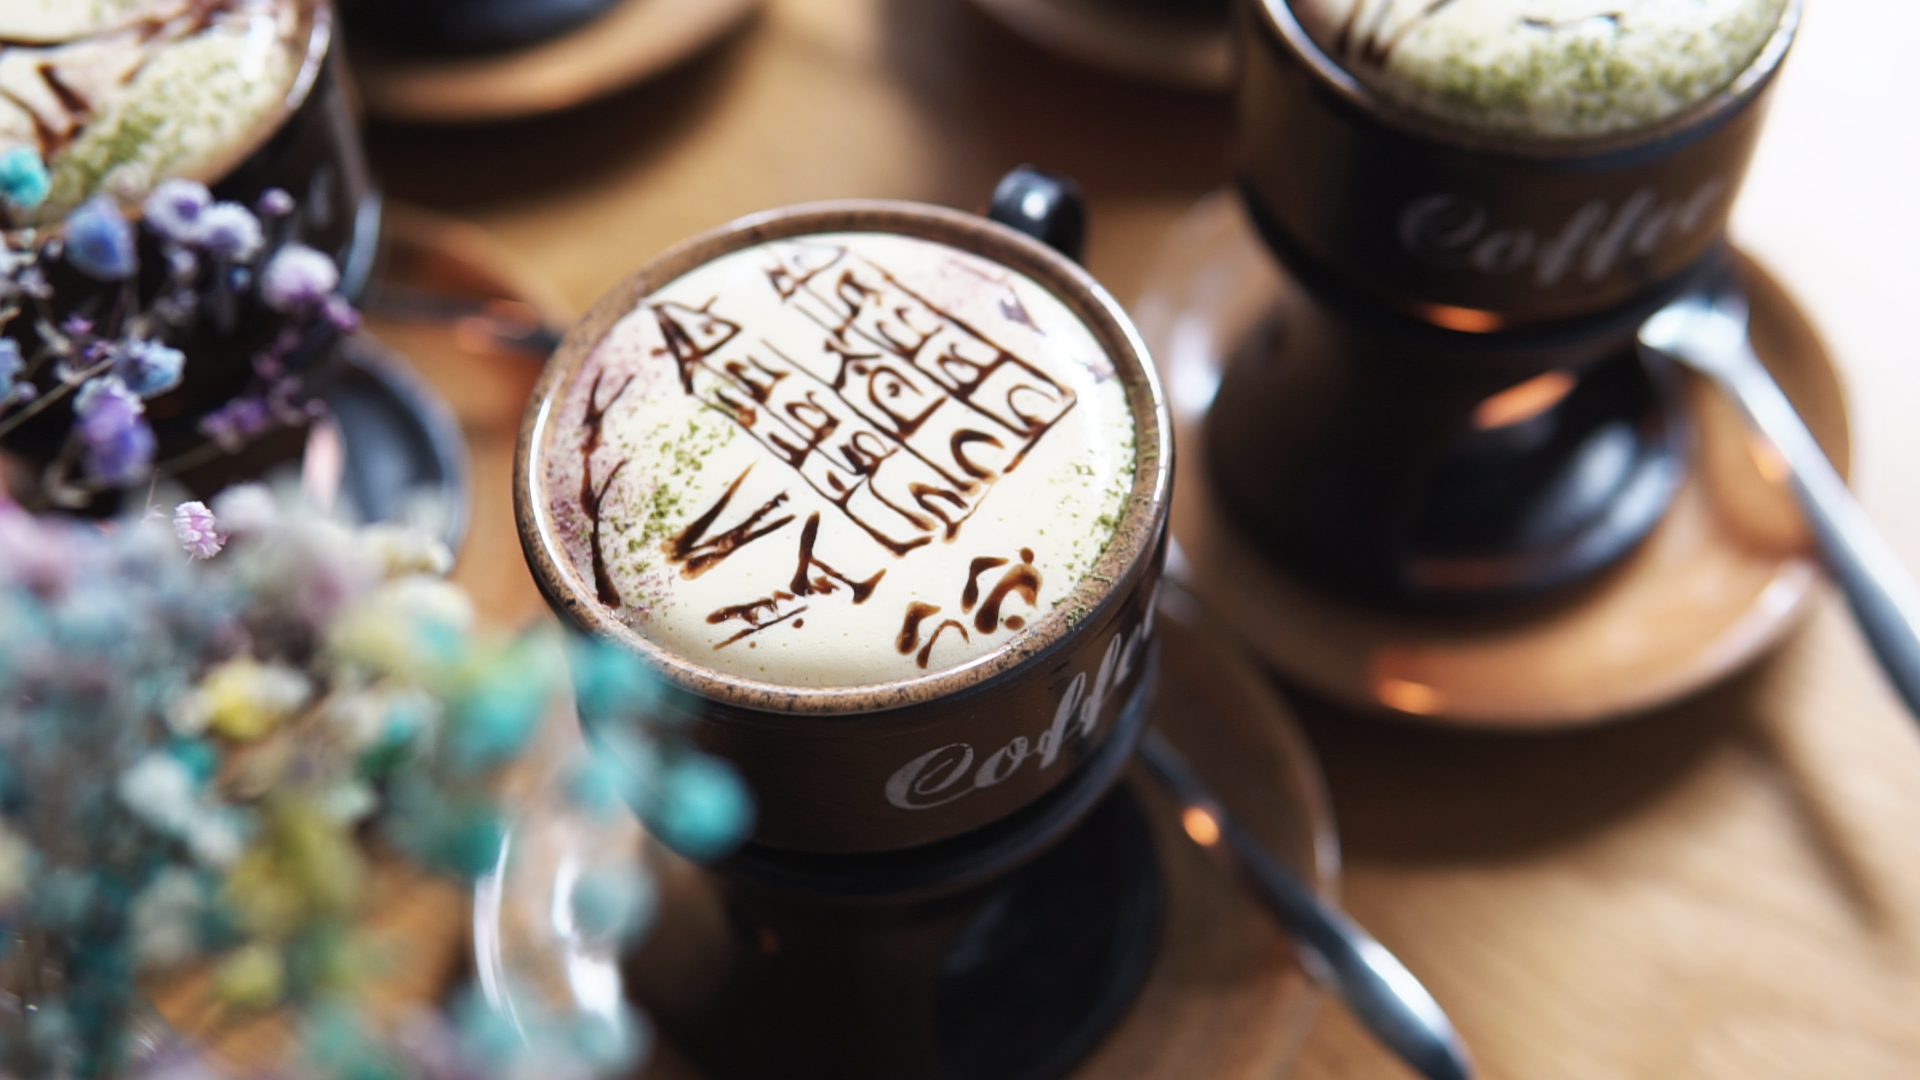 Saigon café serves up egg coffee with Vietnam's stunning sites on froth